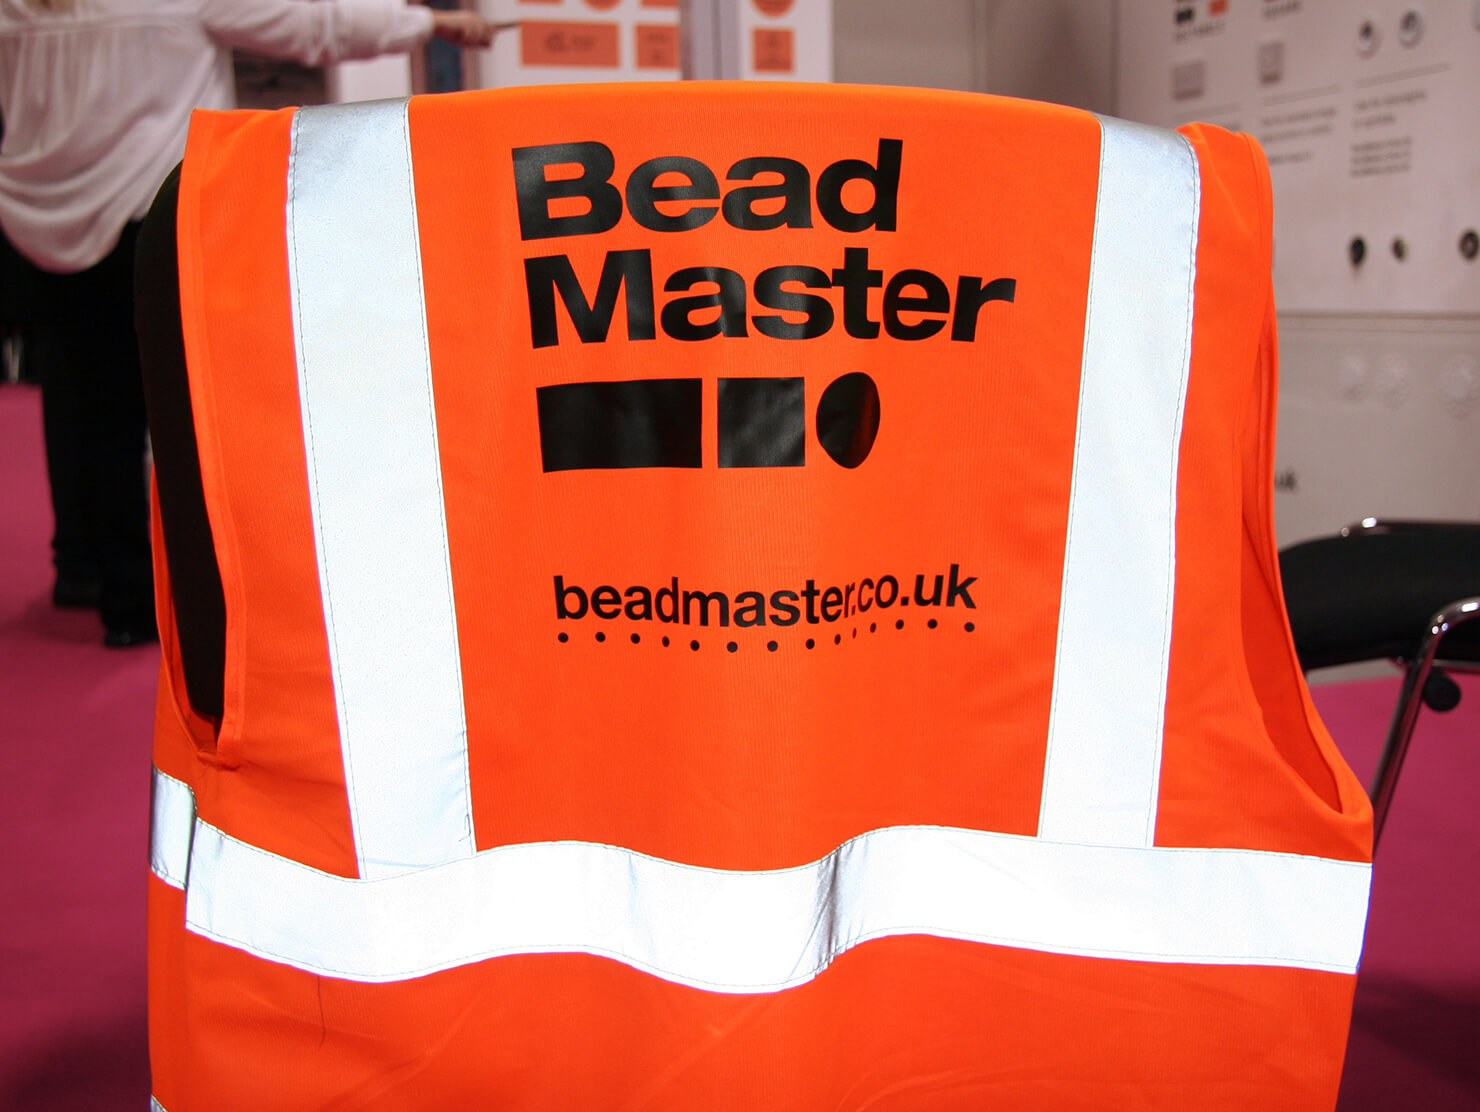 BeadMaster London Build 2019 branded hi-vis workwear.